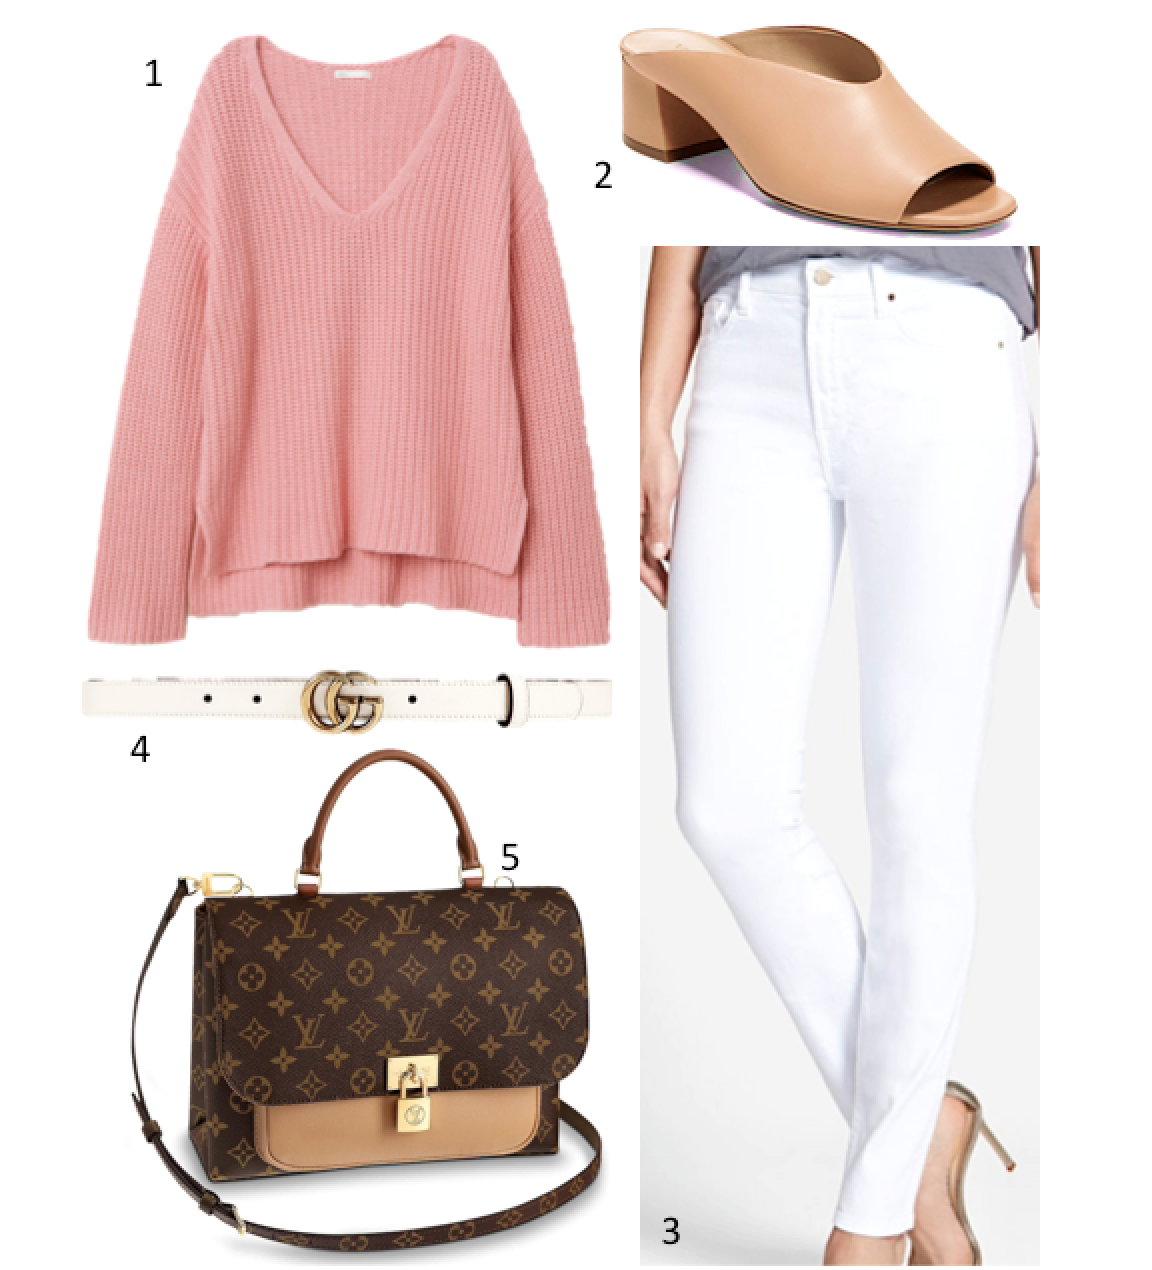 inspiration tuesday: summer nights in blush